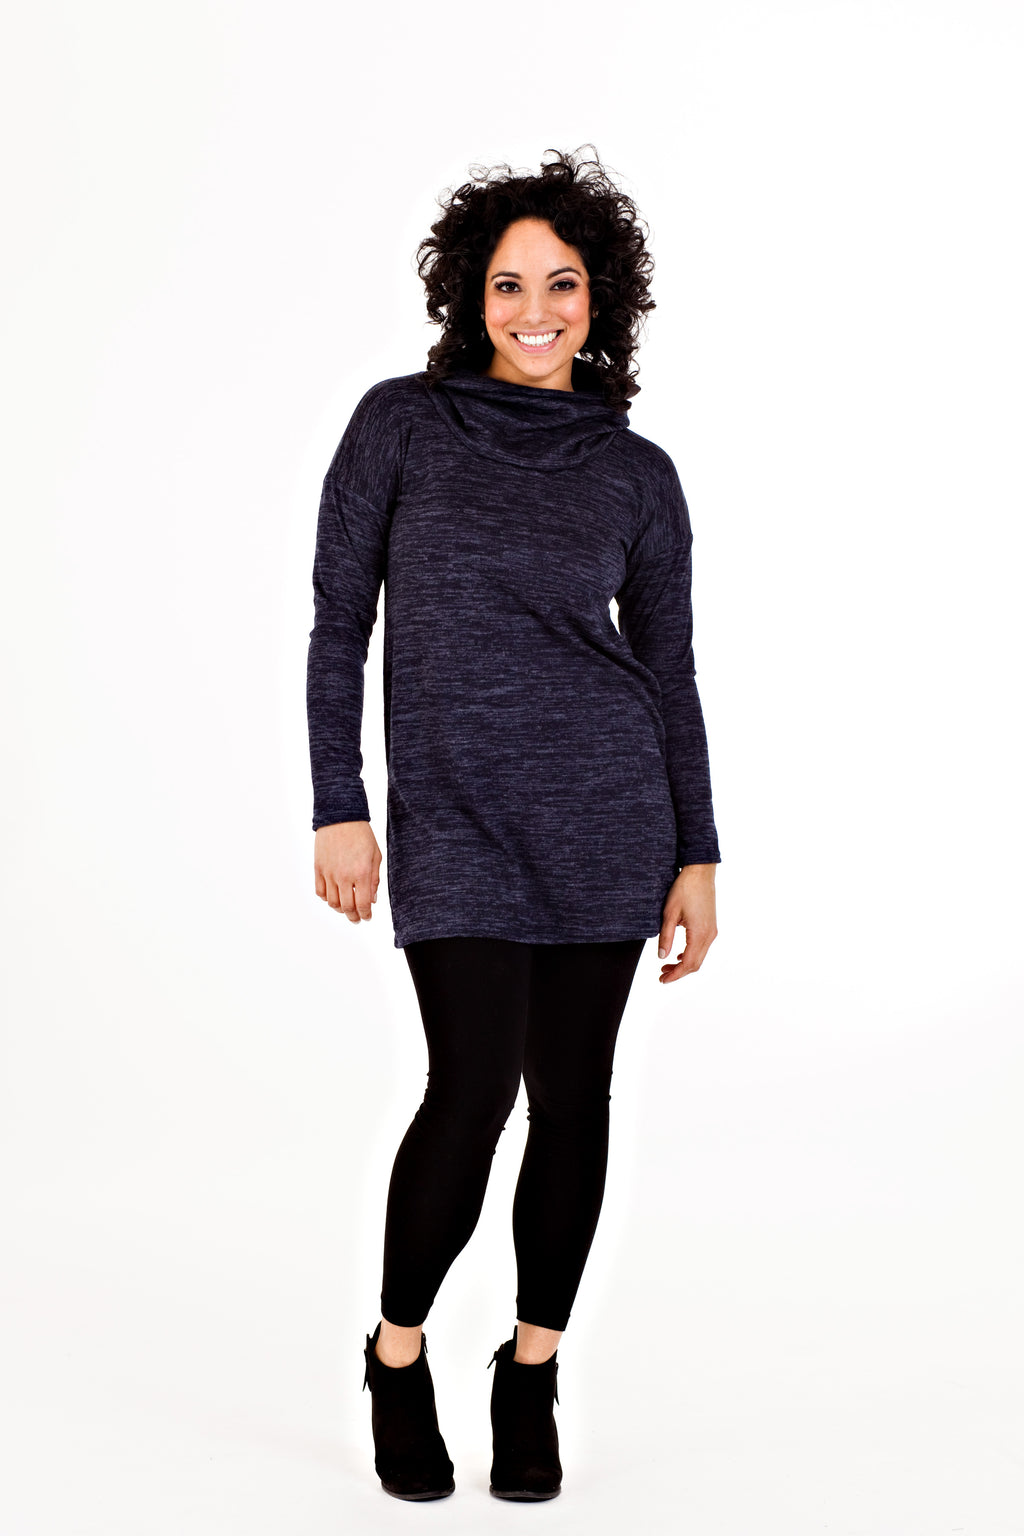 Raina Tunic - Navy Knit